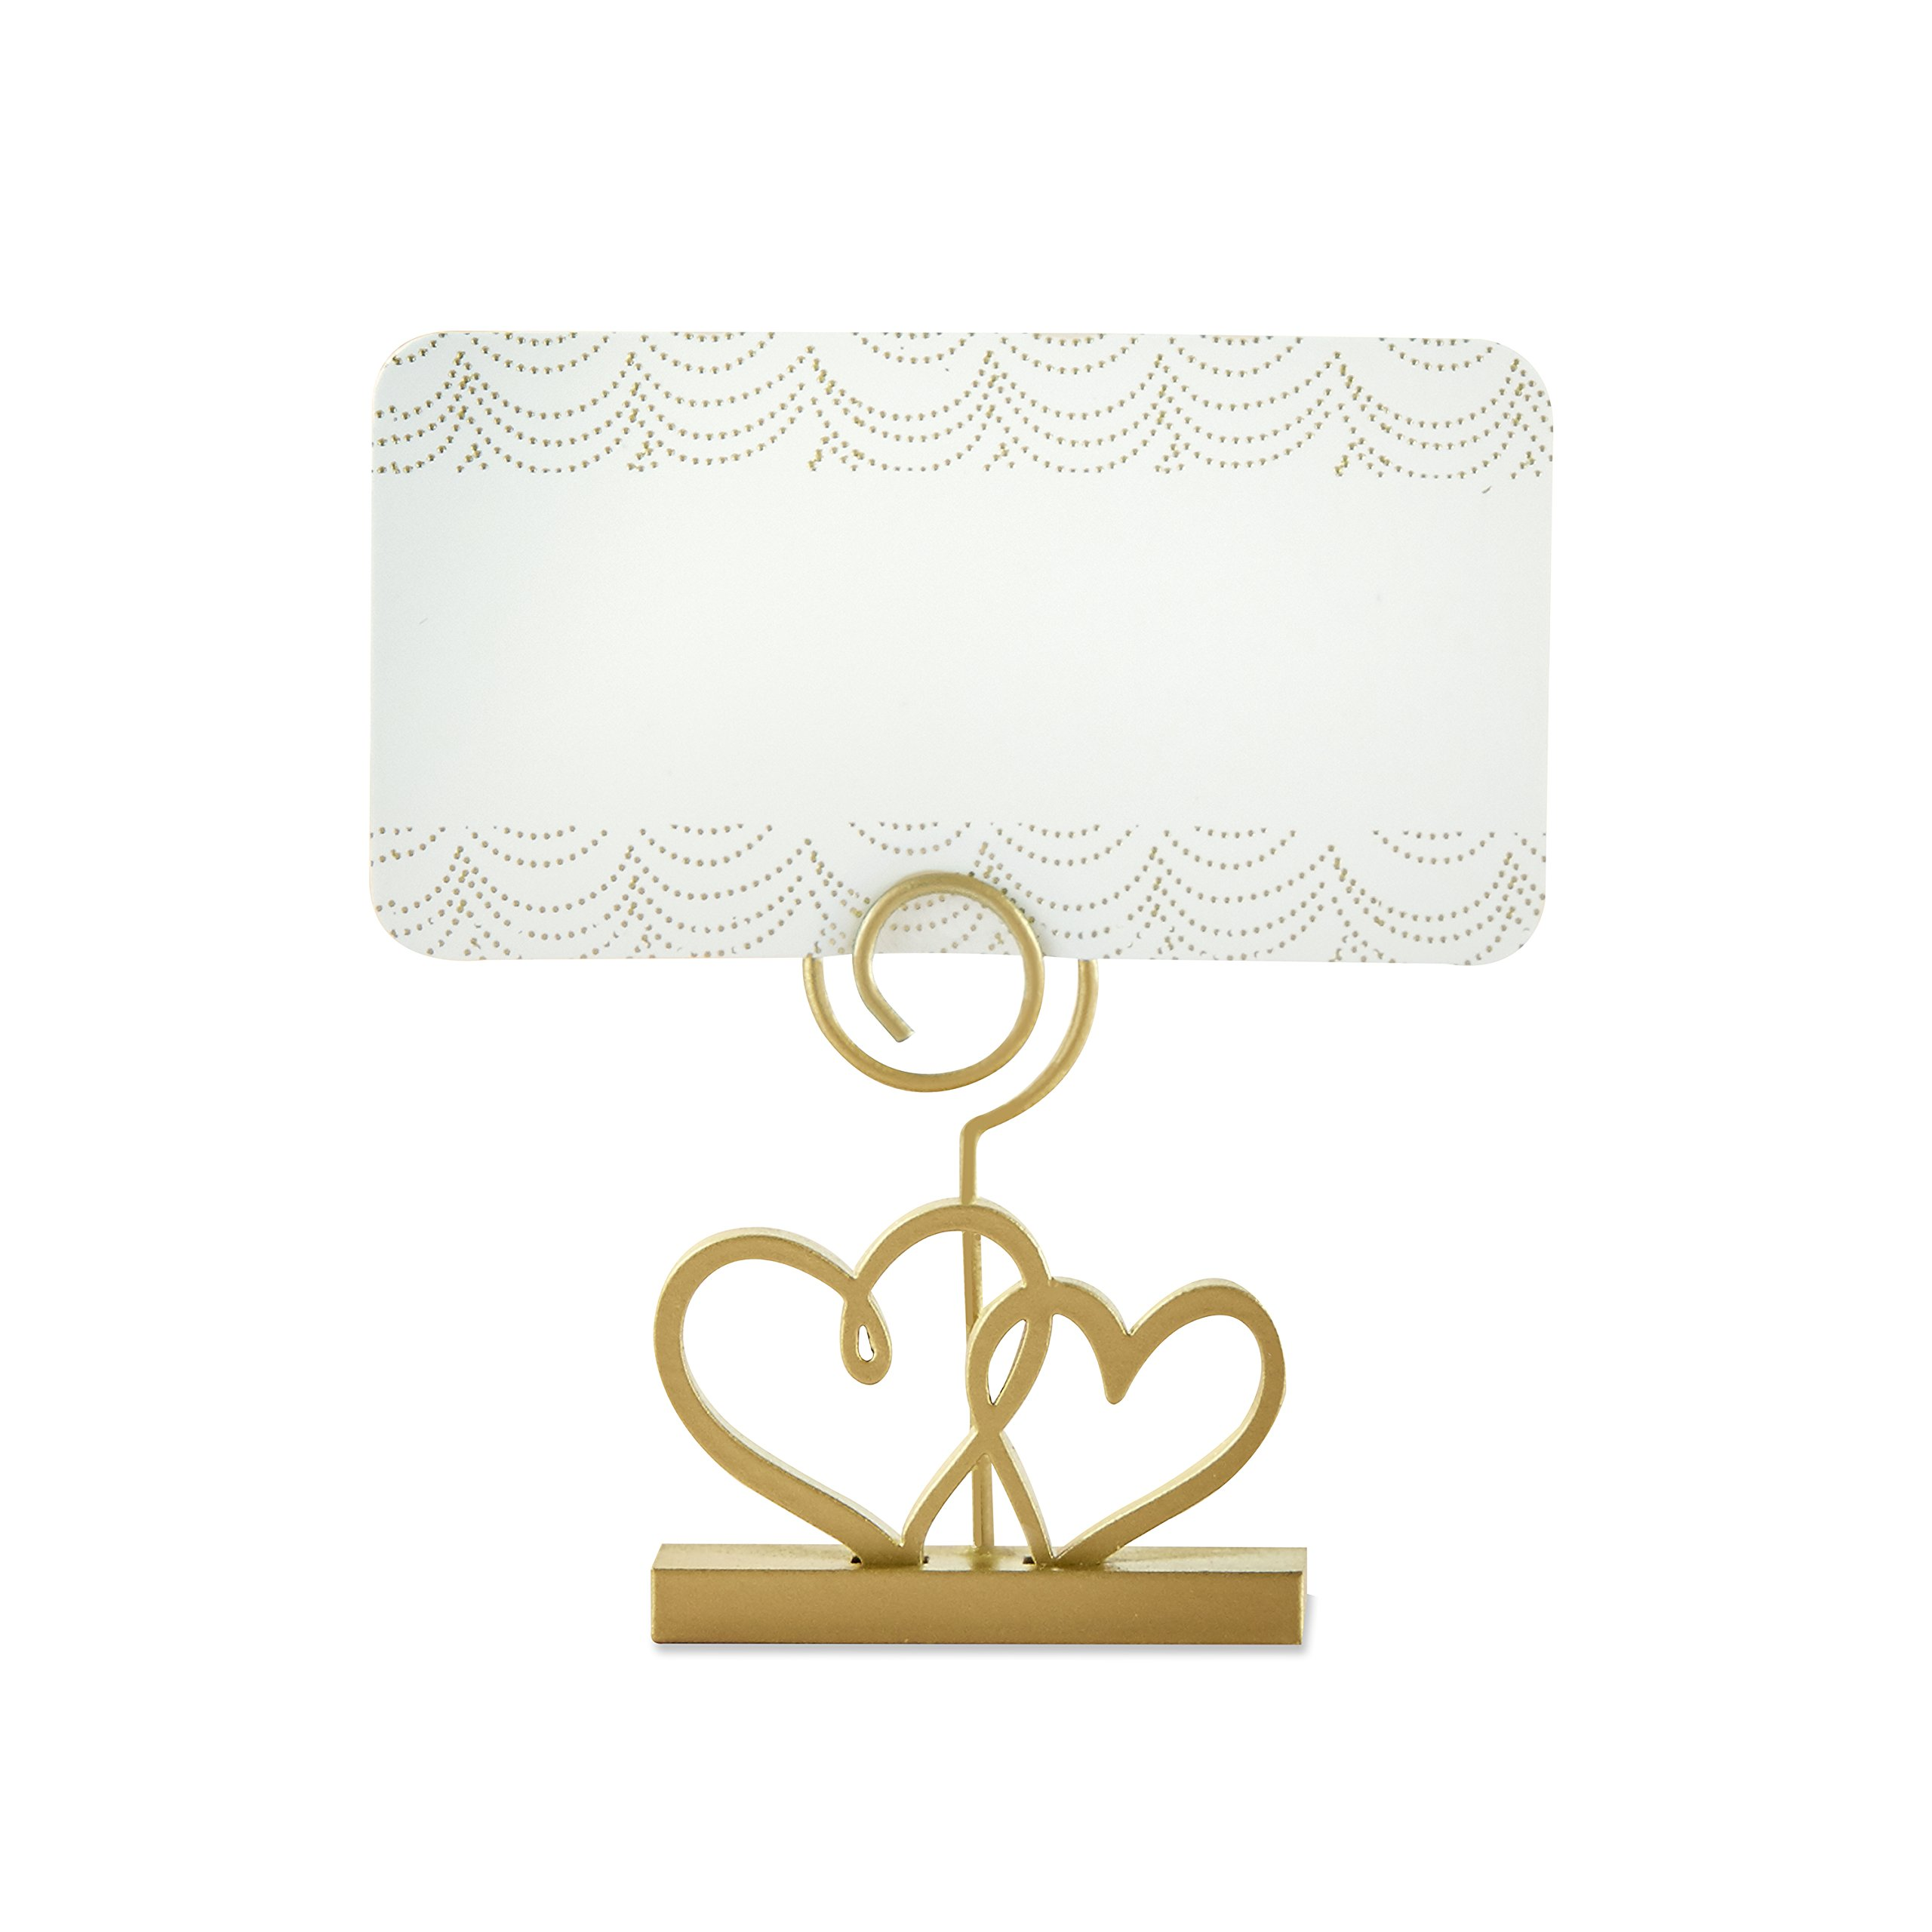 Set of 6 Gold Double Heart Place Card Holders - 24 Sets